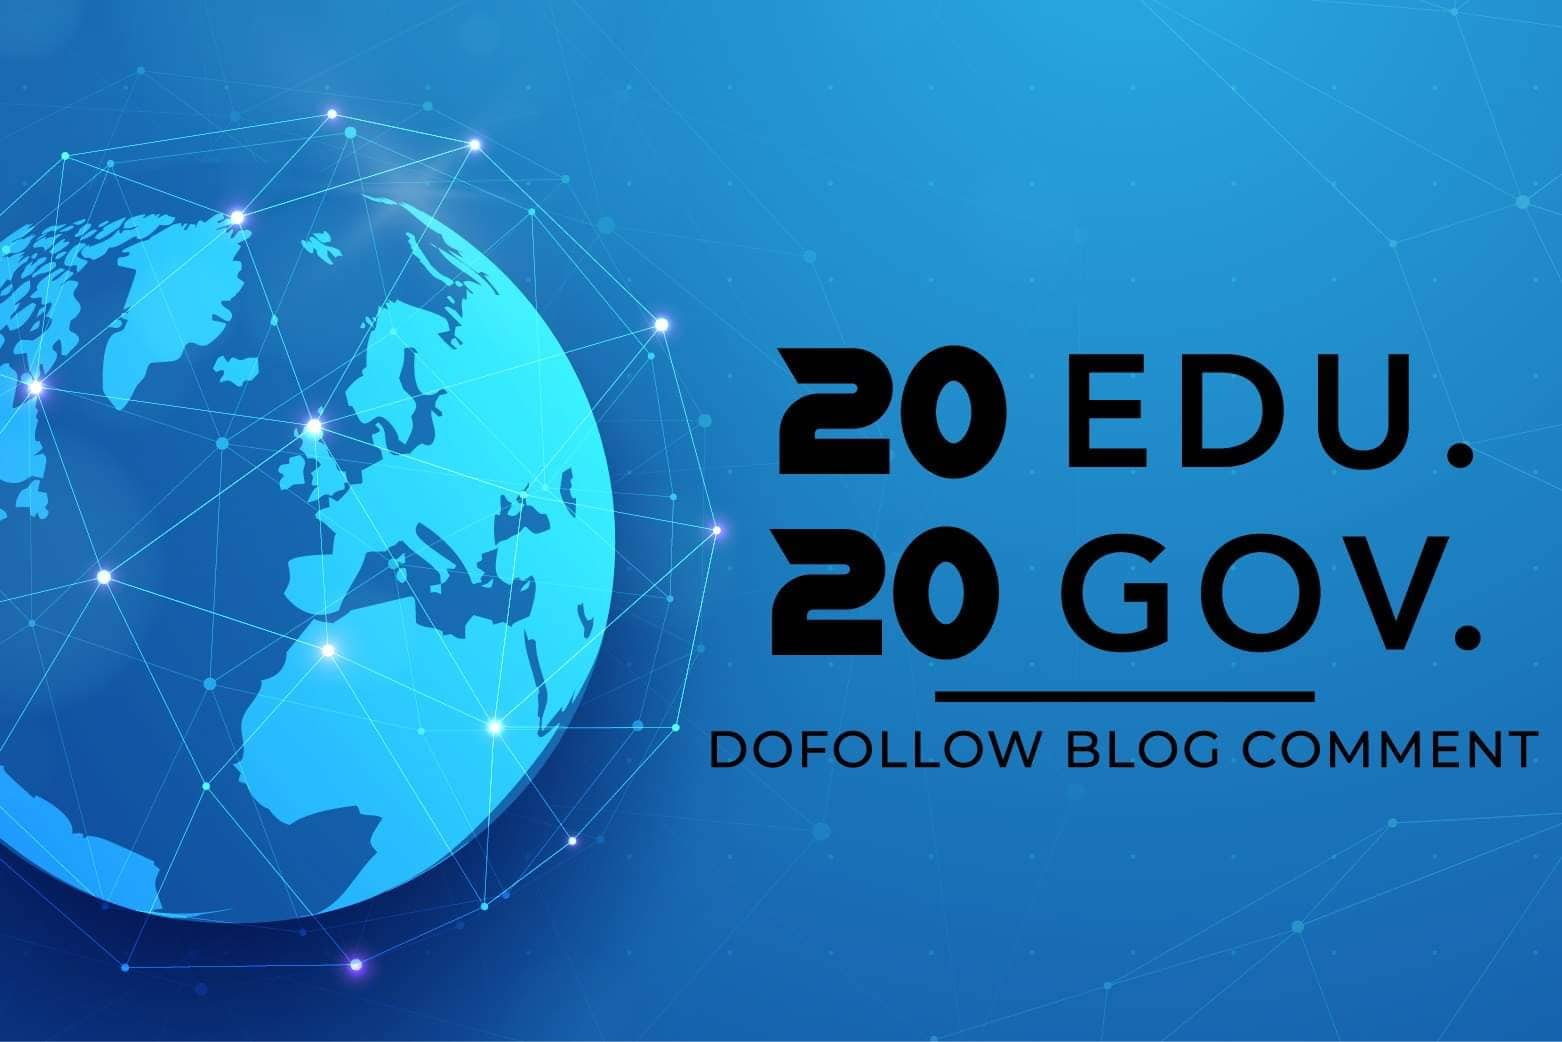 I Will do Authority 20. edu and 20. gov DOFOLLOW BLOGCOMMENTS Backlinks Improve Google SEO With Perf